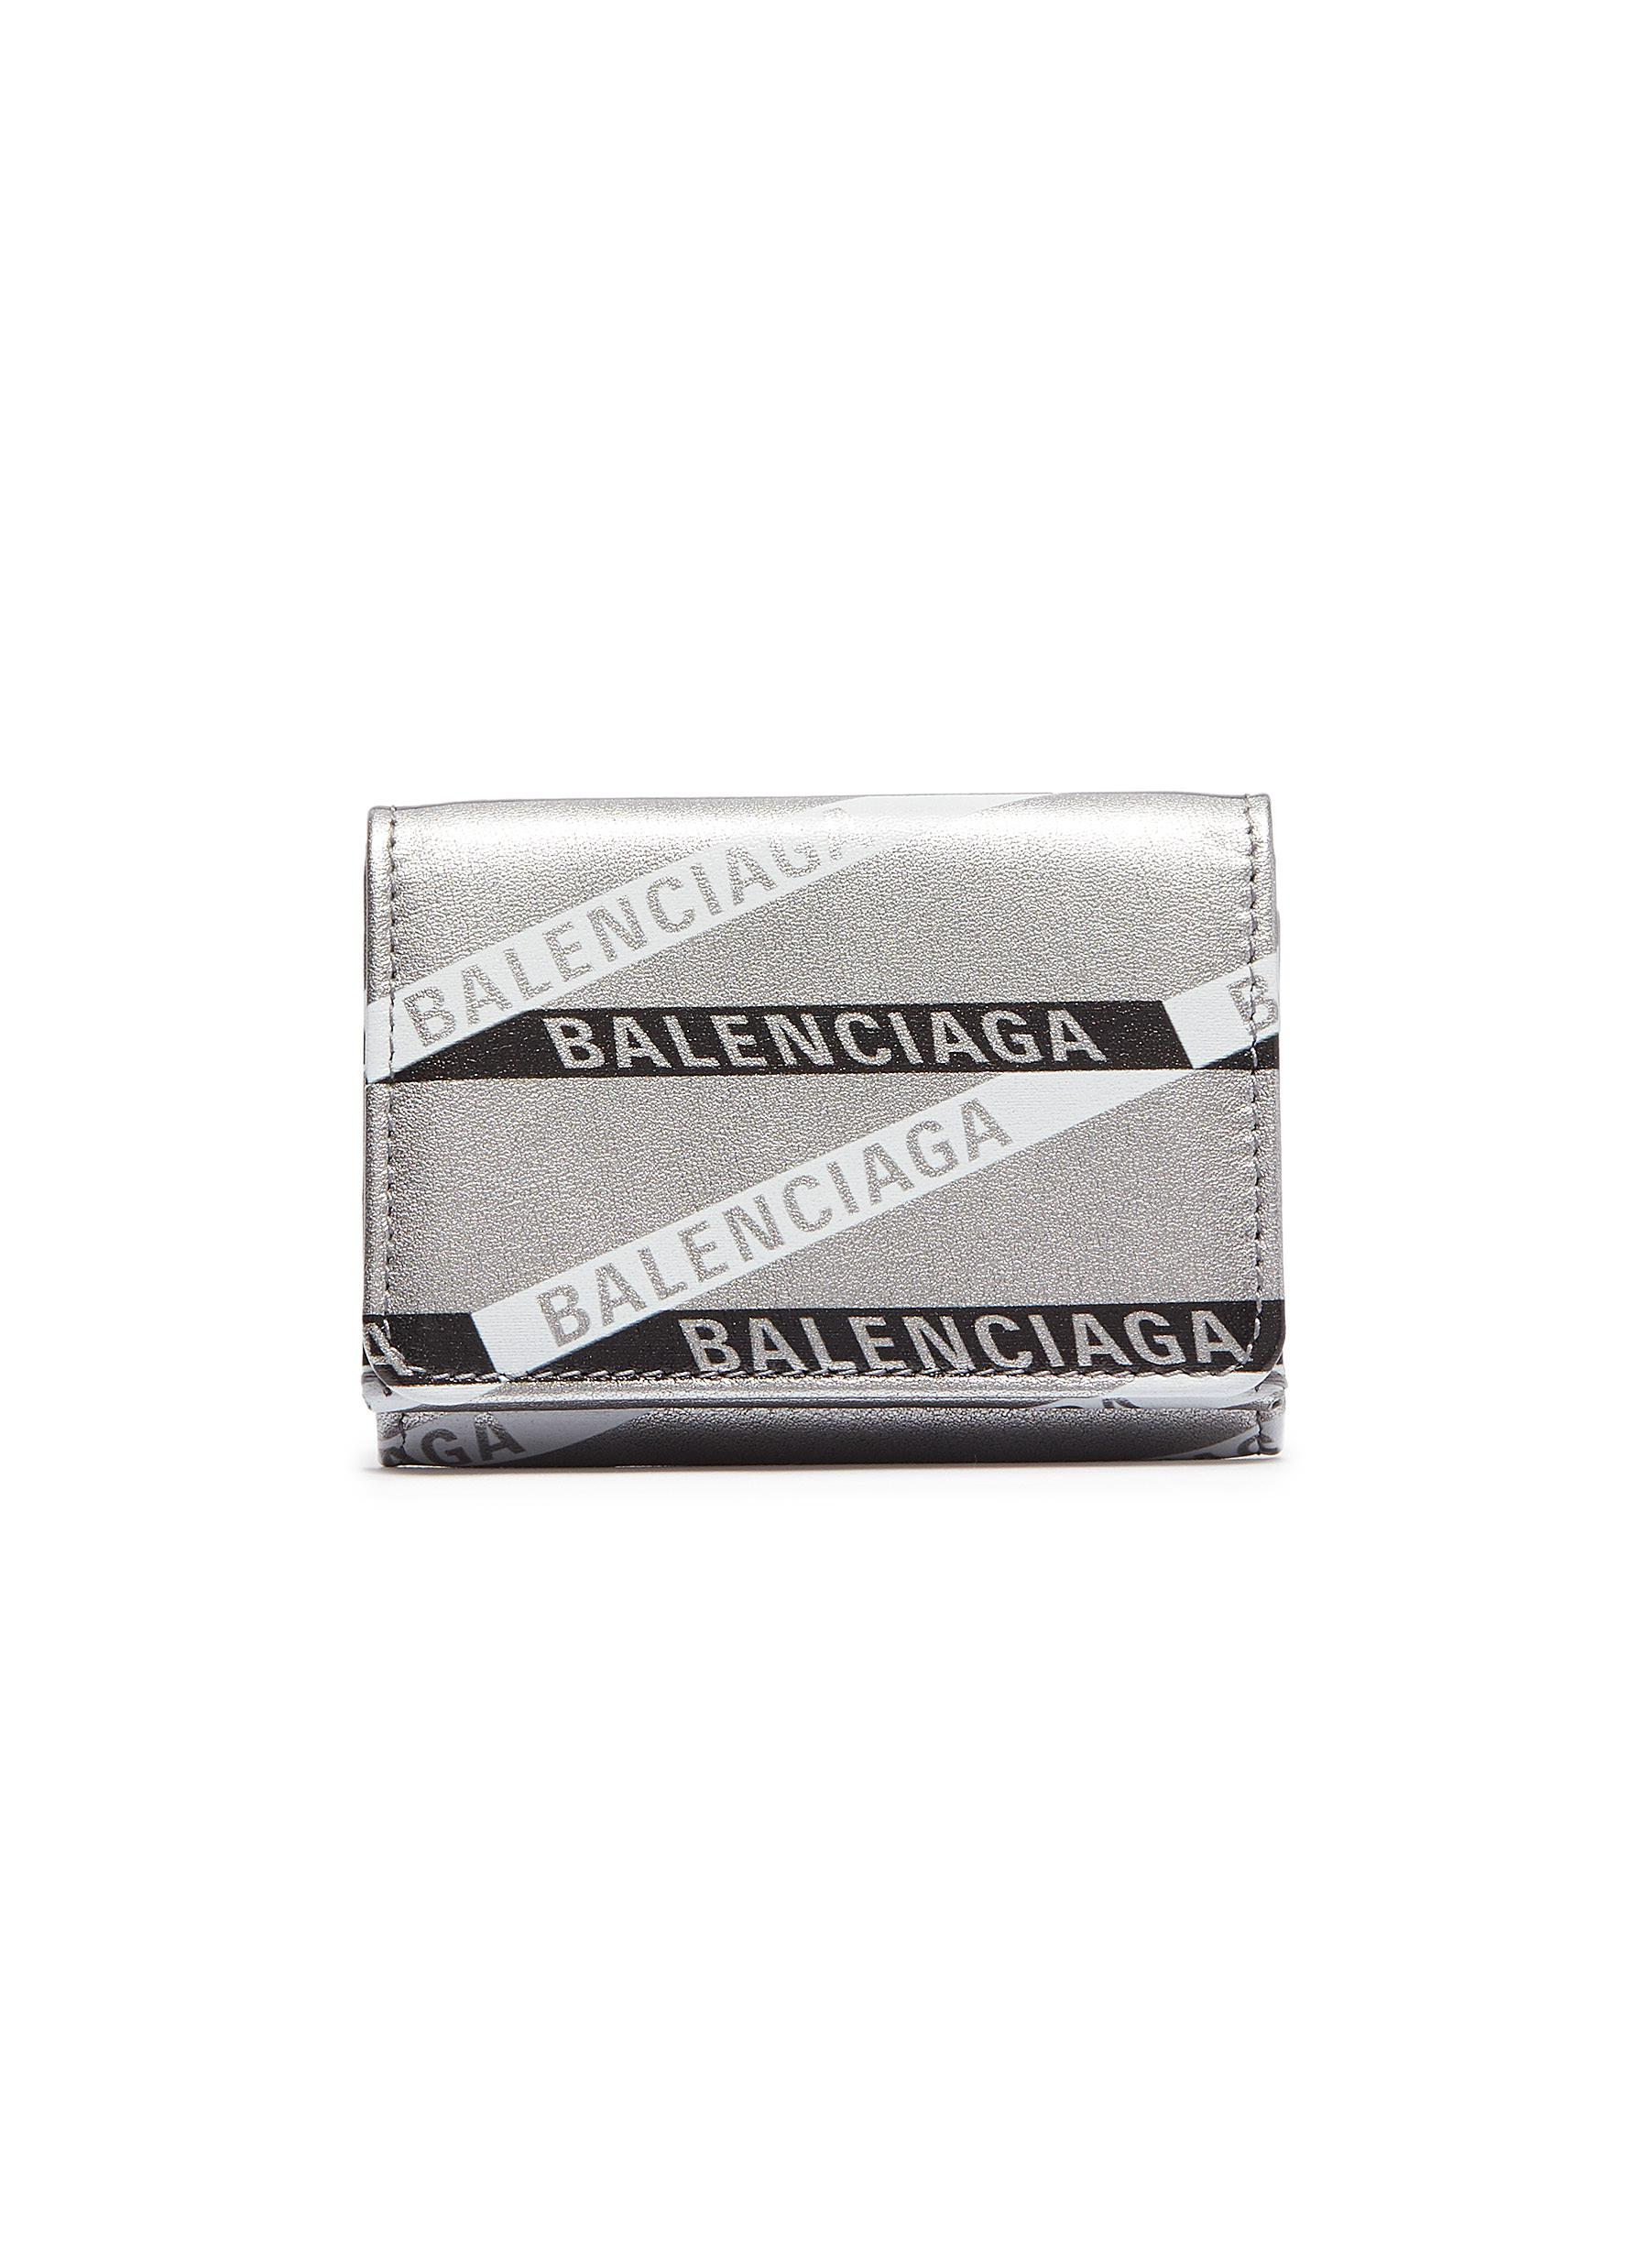 b3b2c1255218 Main View - Click To Enlarge - Balenciaga -  Monogram Everyday  logo print  metallic